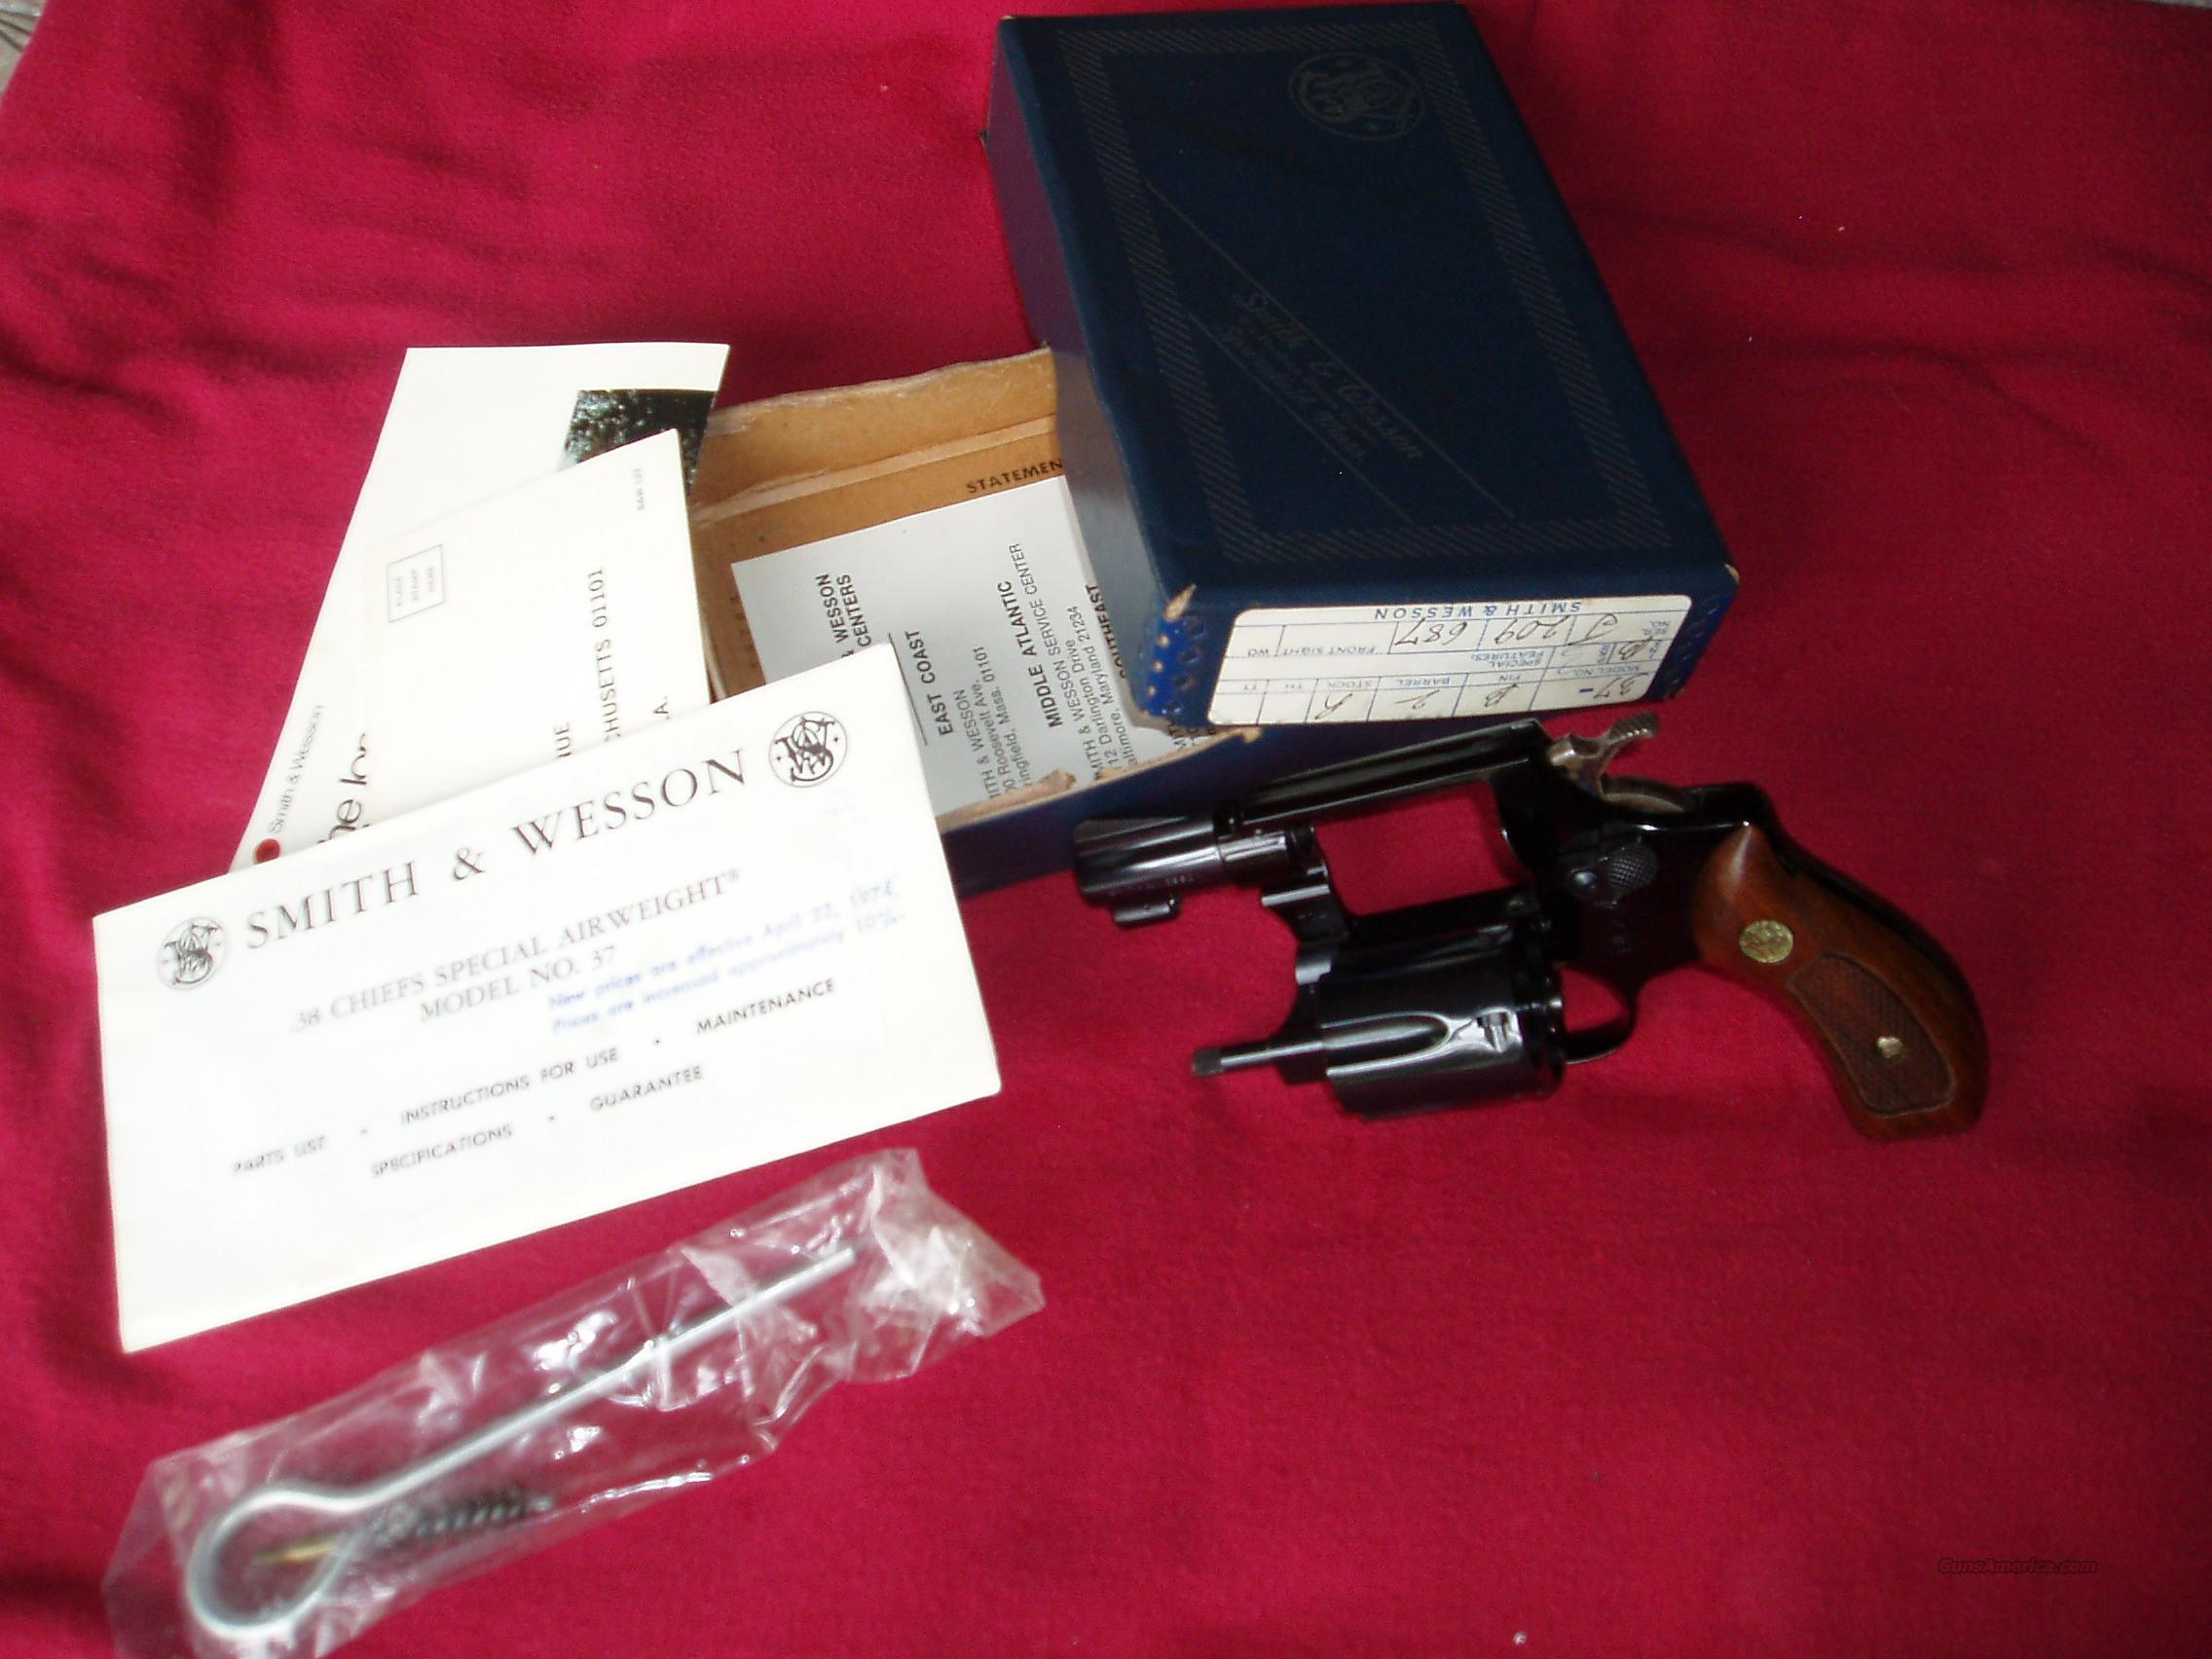 Smith & Wesson  Model 37 Chief Special Airweight  .38 Spl. caliber Revolver   Guns > Pistols > Smith & Wesson Pistols - Autos > Steel Frame